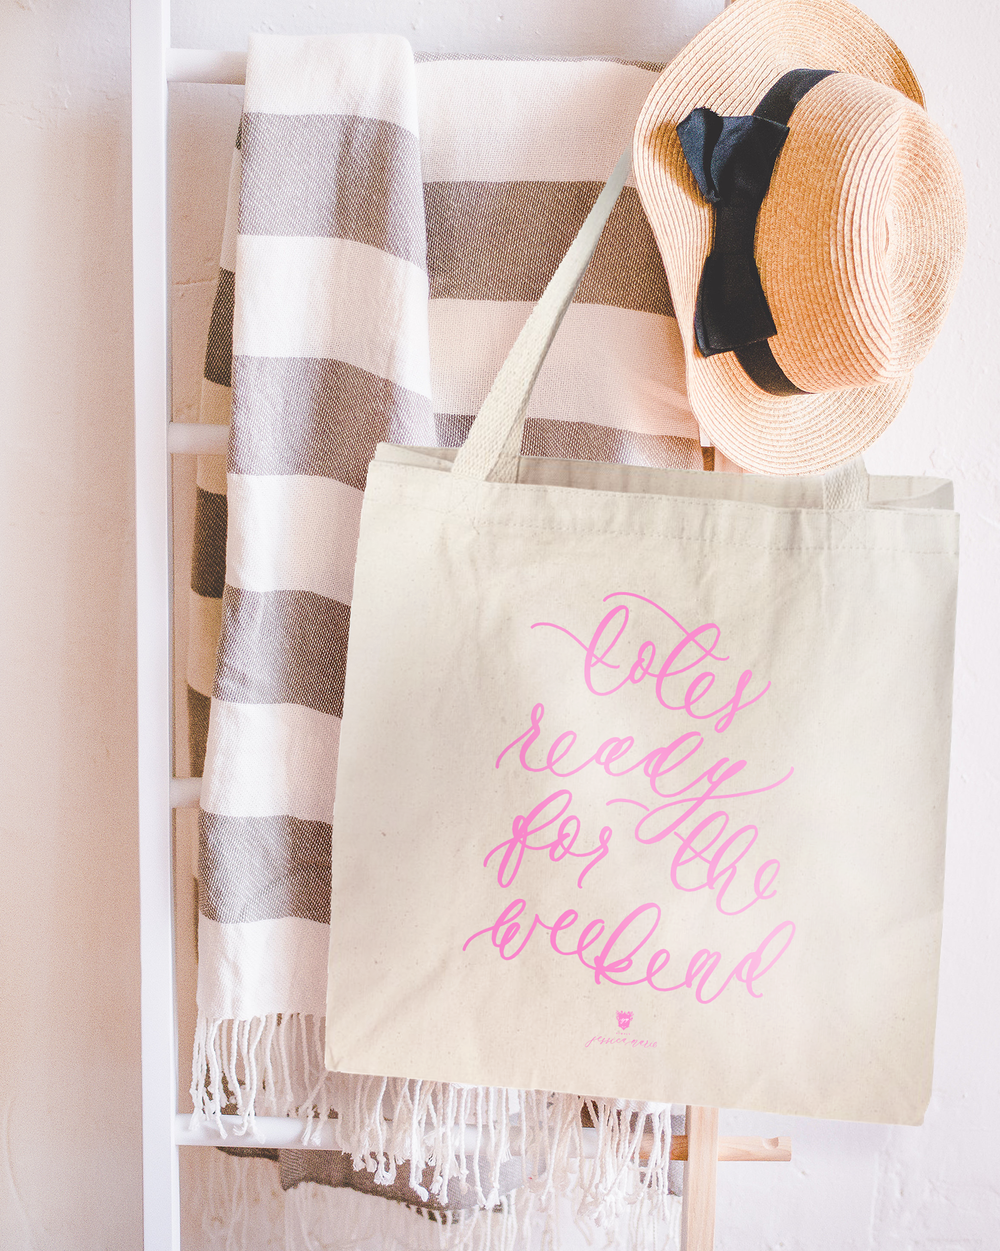 Totes-Ready-for-the-Weekend-Pink-Calligraphy-Tote-Bag-by-Simply-Jessica-Marie.png